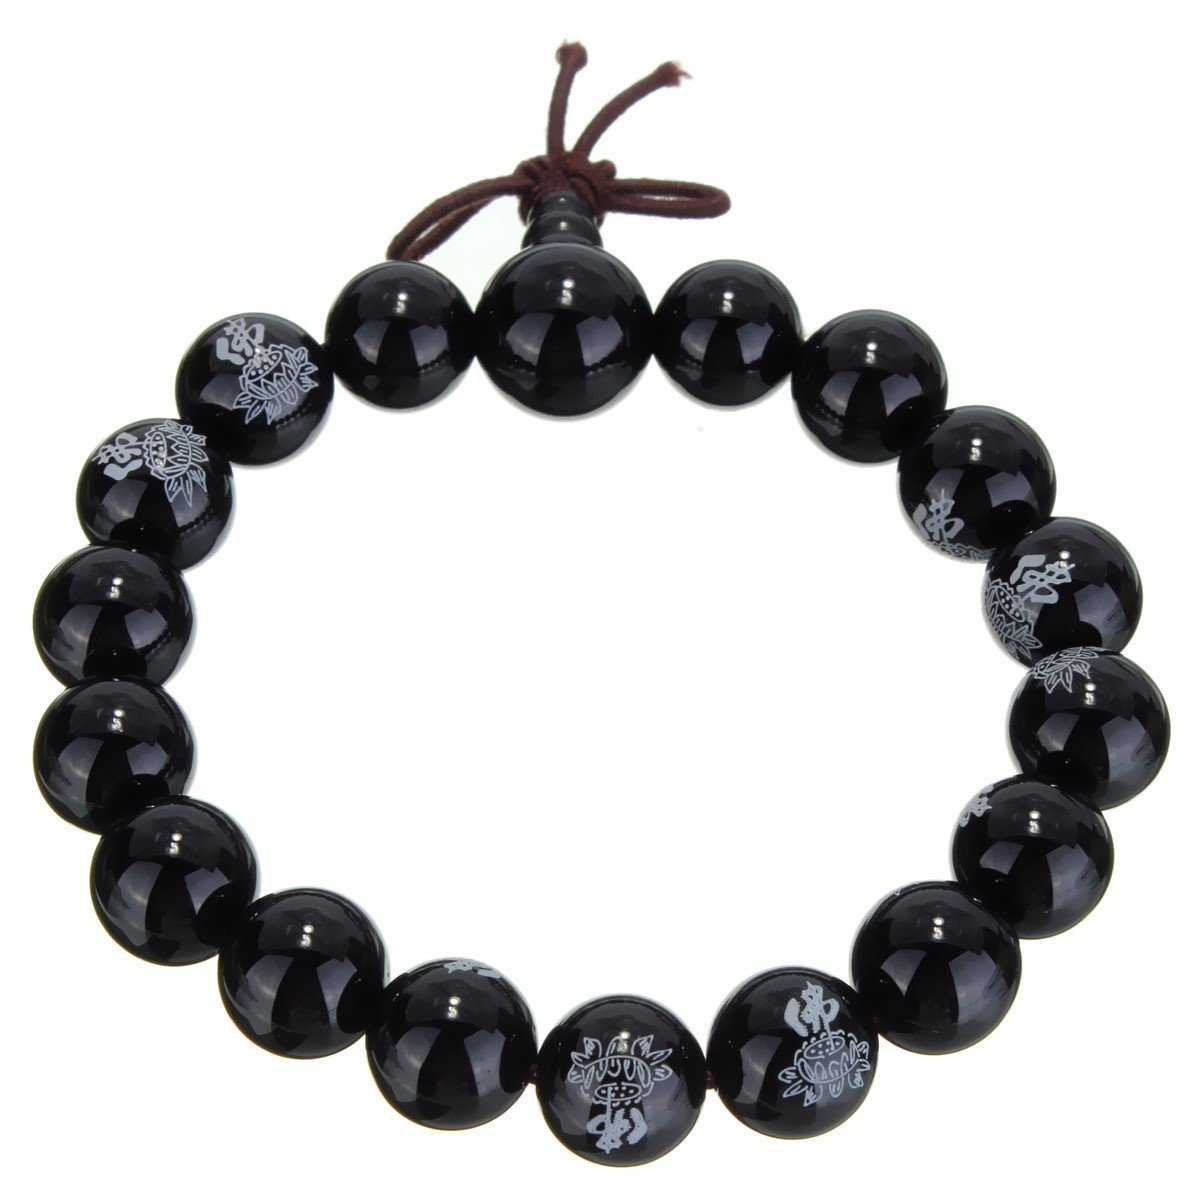 Black Agate Mala with Lotus Flower Engraving image 2